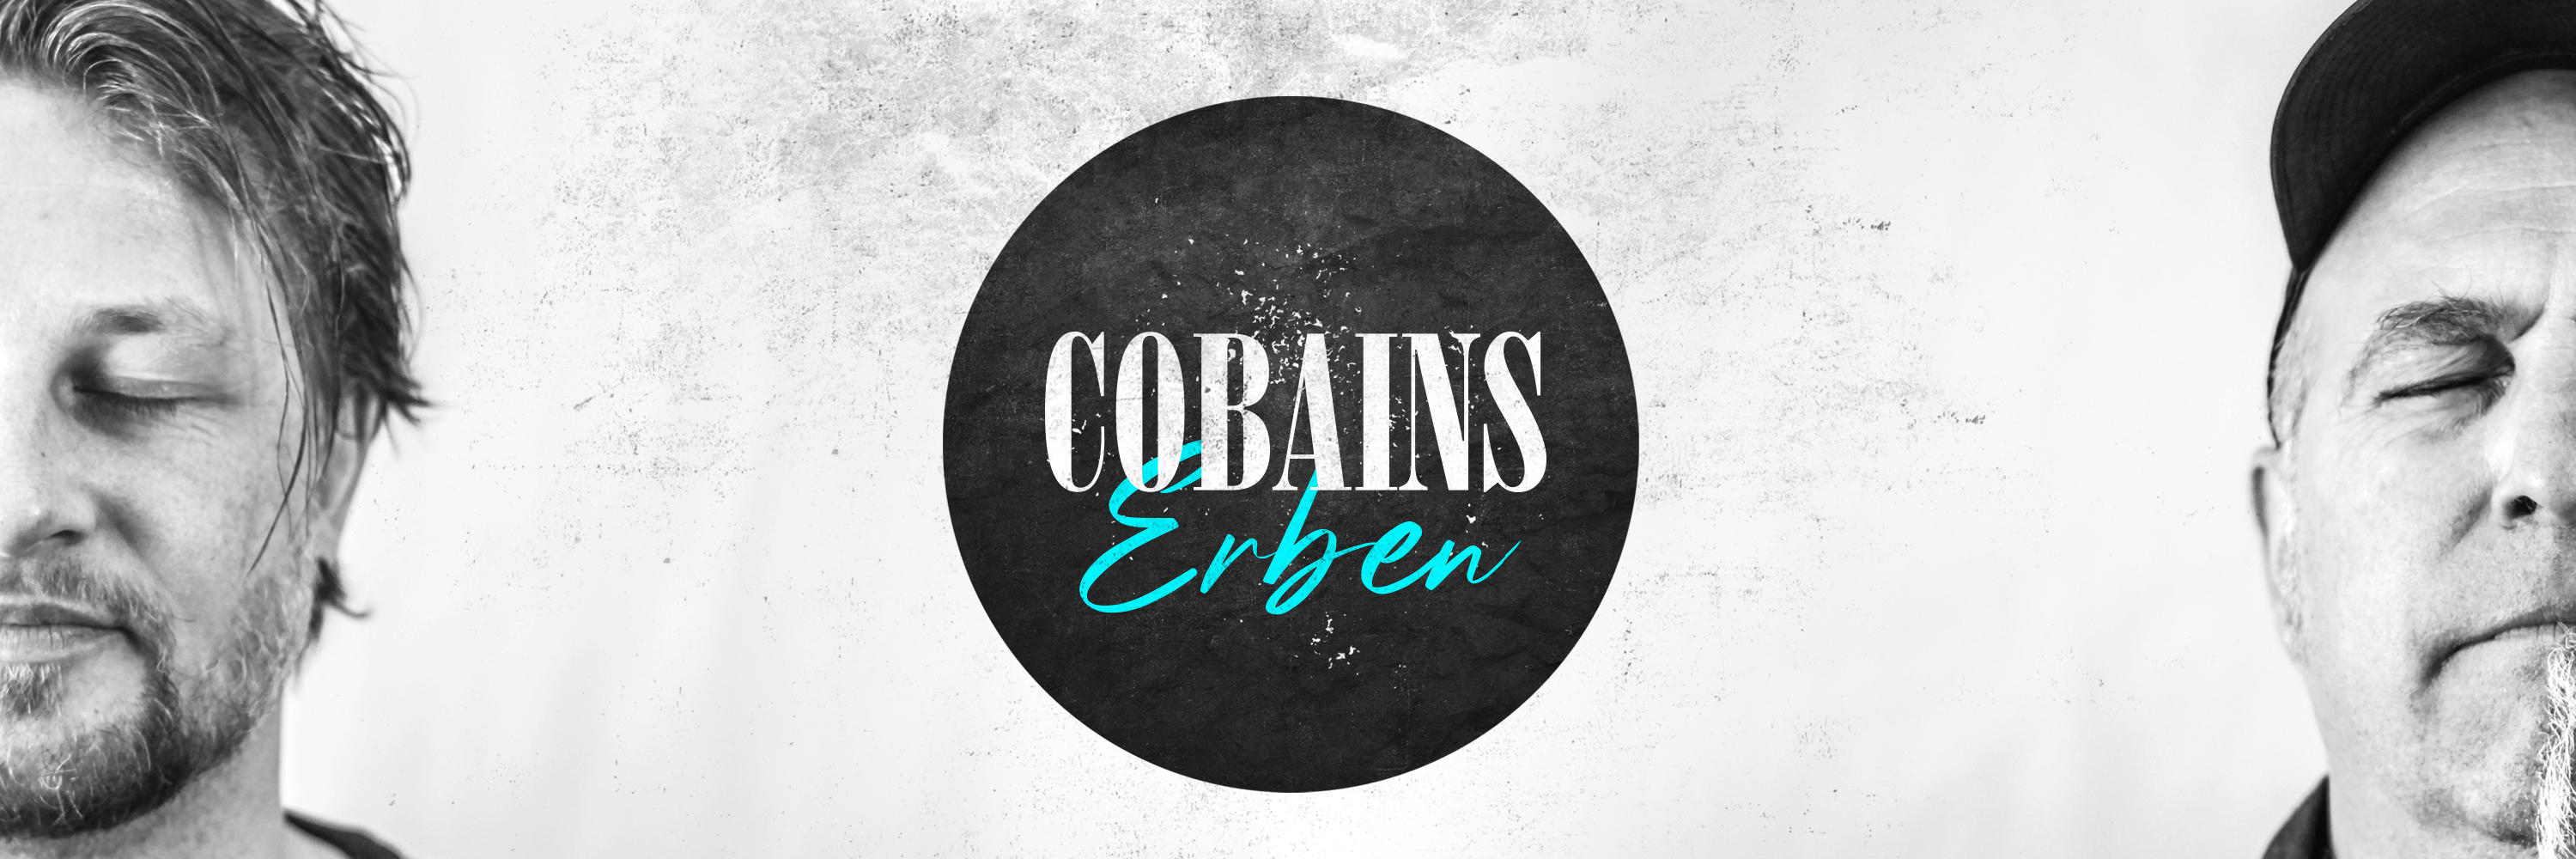 Cobains Erben